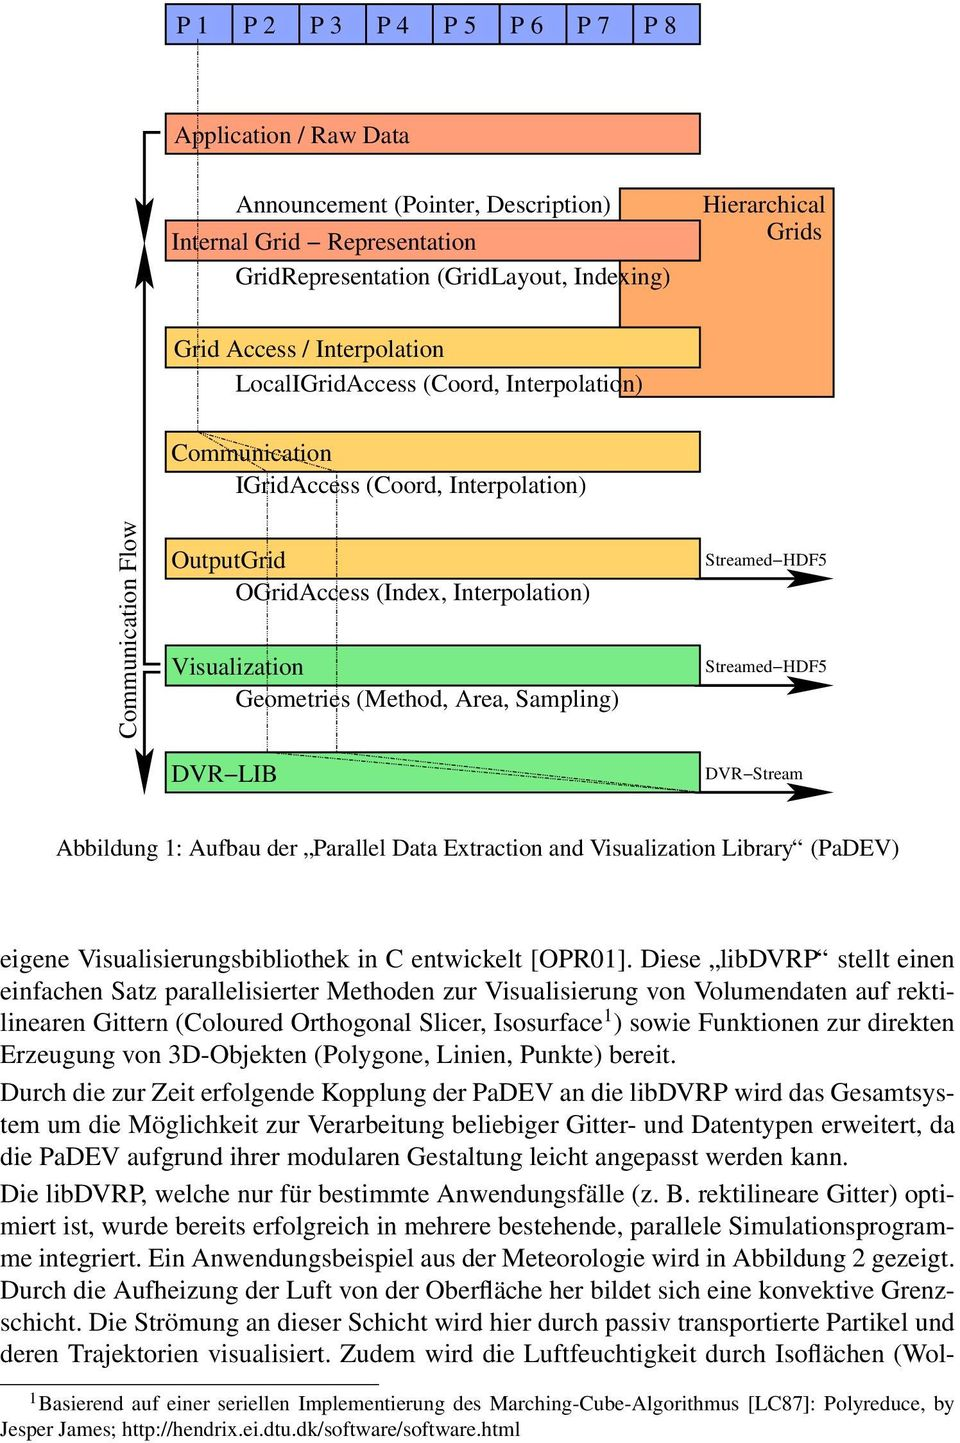 (Method, Area, Sampling) DVR LIB Streamed HDF5 Streamed HDF5 DVR Stream Abbildung 1: Aufbau der Parallel Data Extraction and Visualization Library (PaDEV) eigene Visualisierungsbibliothek in C